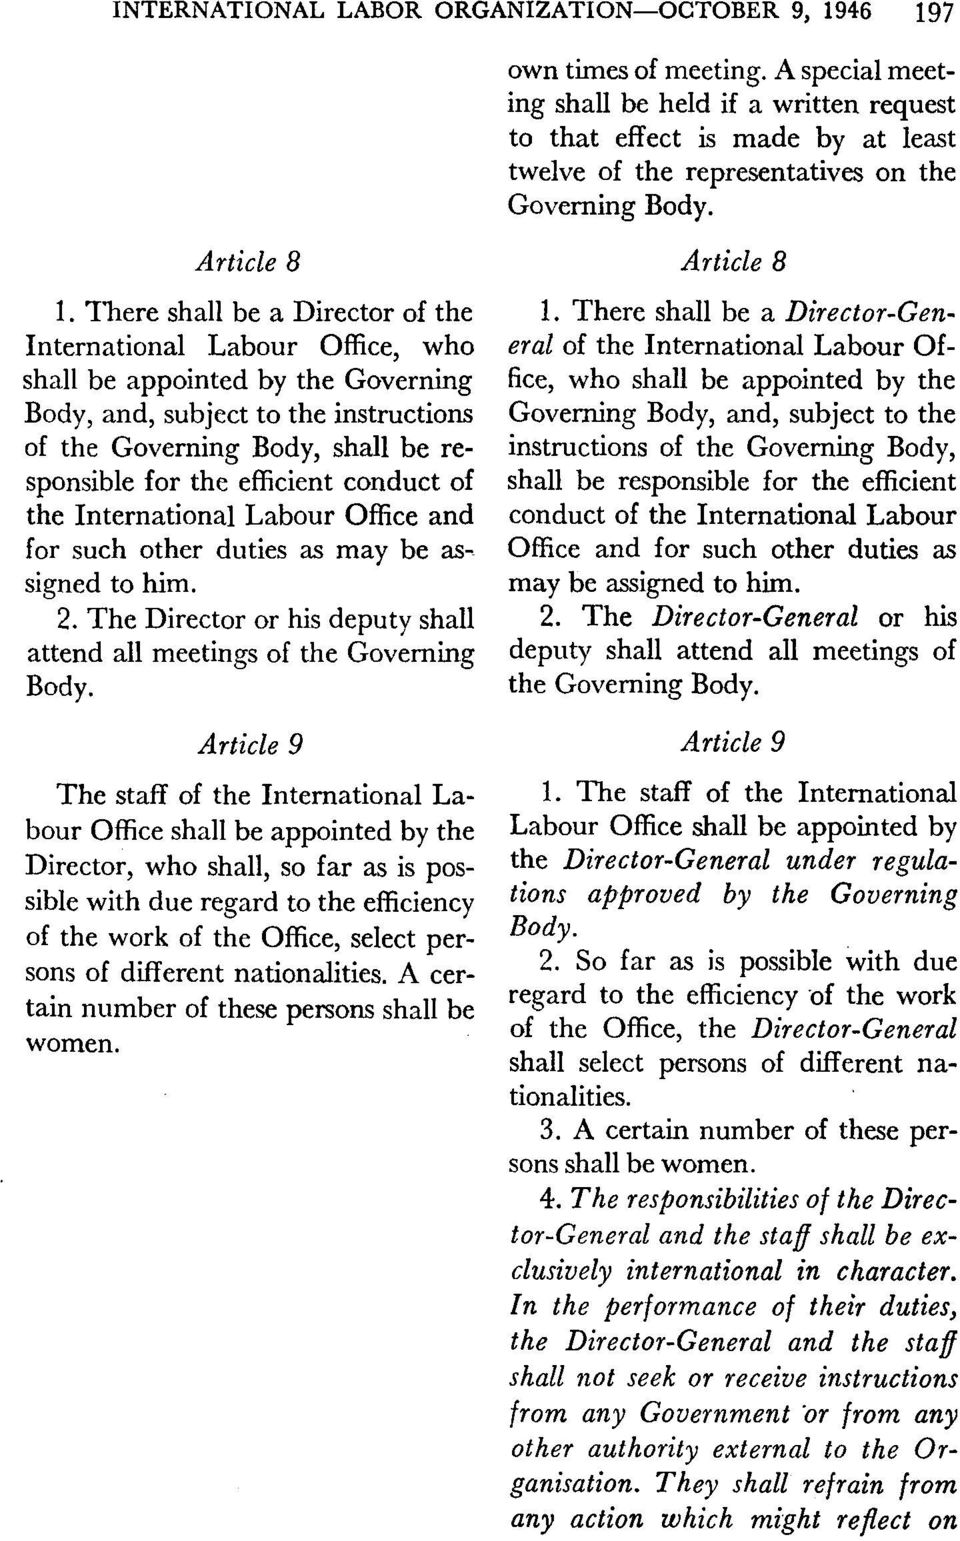 There shall be a Director of the International Labour Office, who shall be appointed by the Governing Body, and, subject to the instructions of the Governing Body, shall be responsible for the